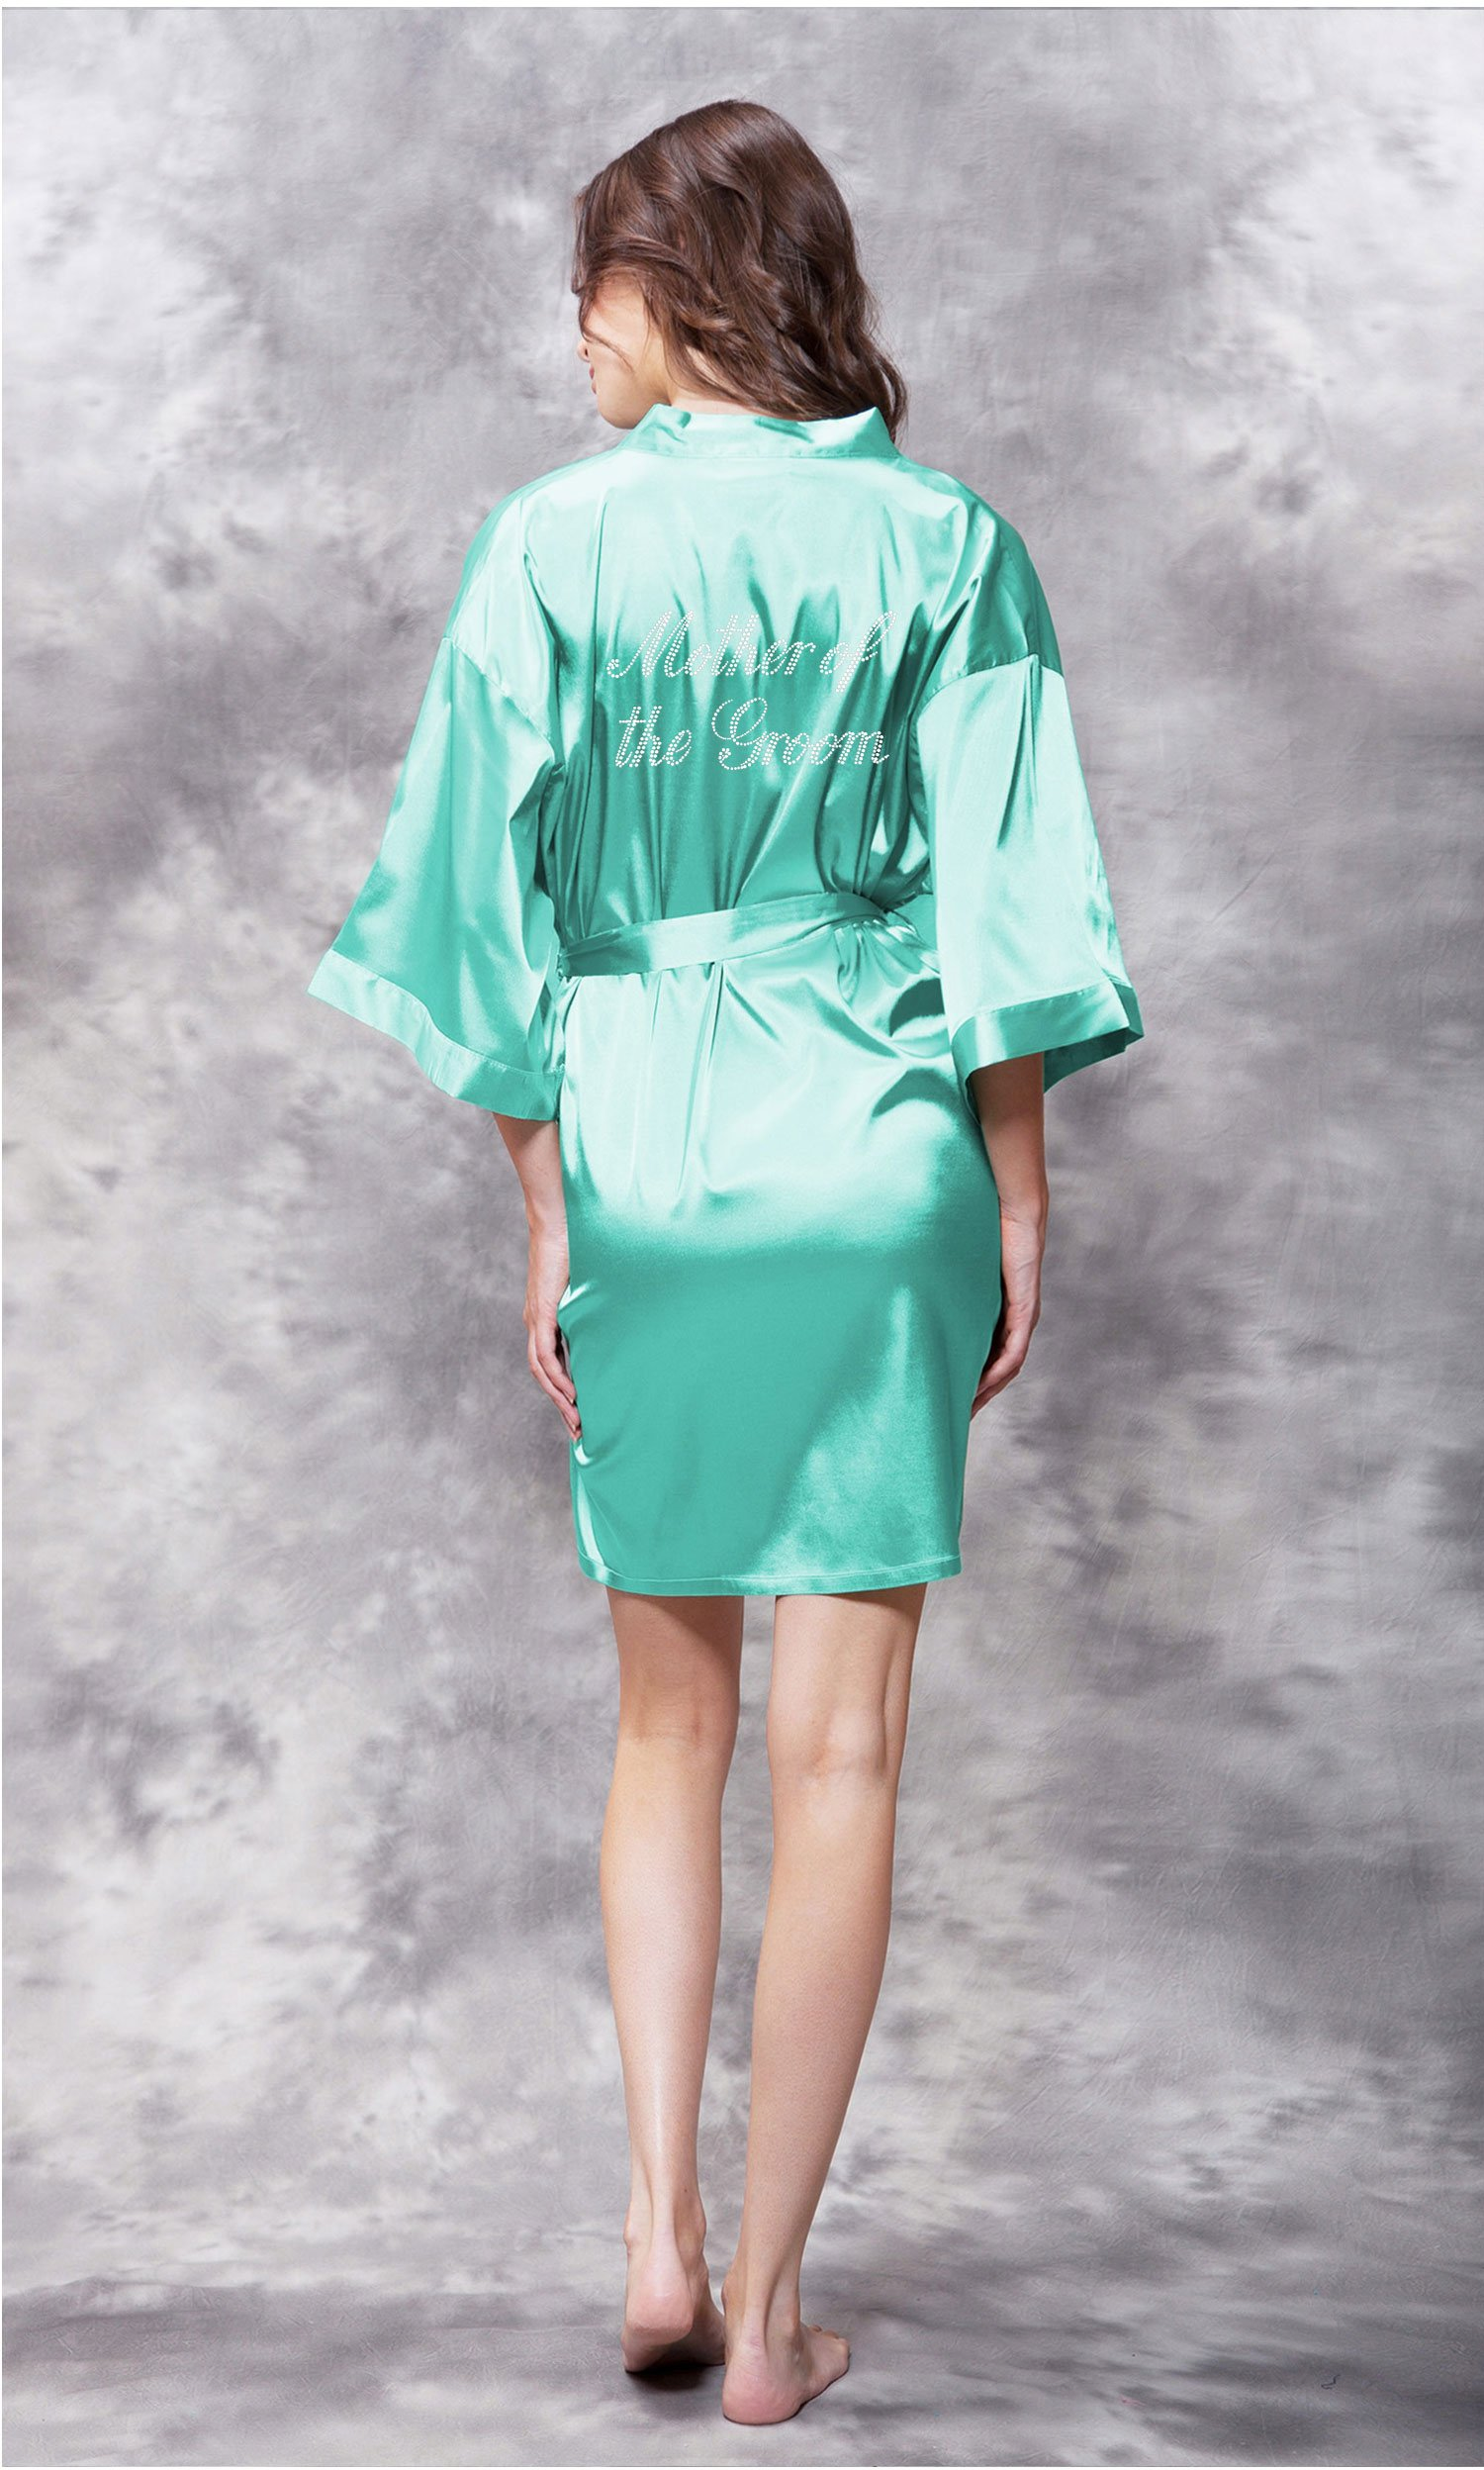 Mother of the Groom Clear Rhinestone Satin Kimono Mint Green Short Robe-Robemart.com